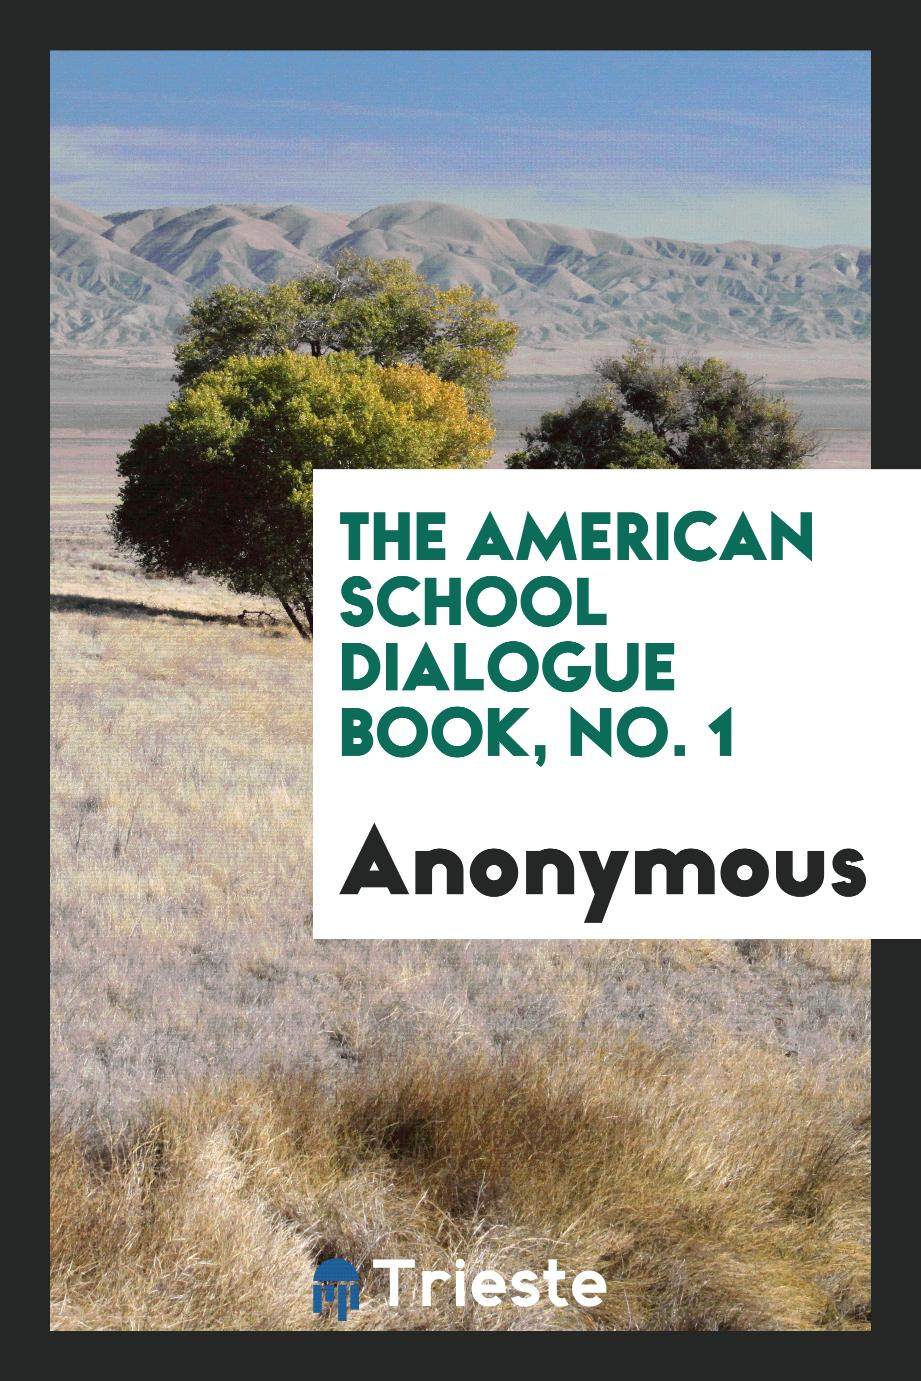 Anonymous - The American school dialogue book, No. 1